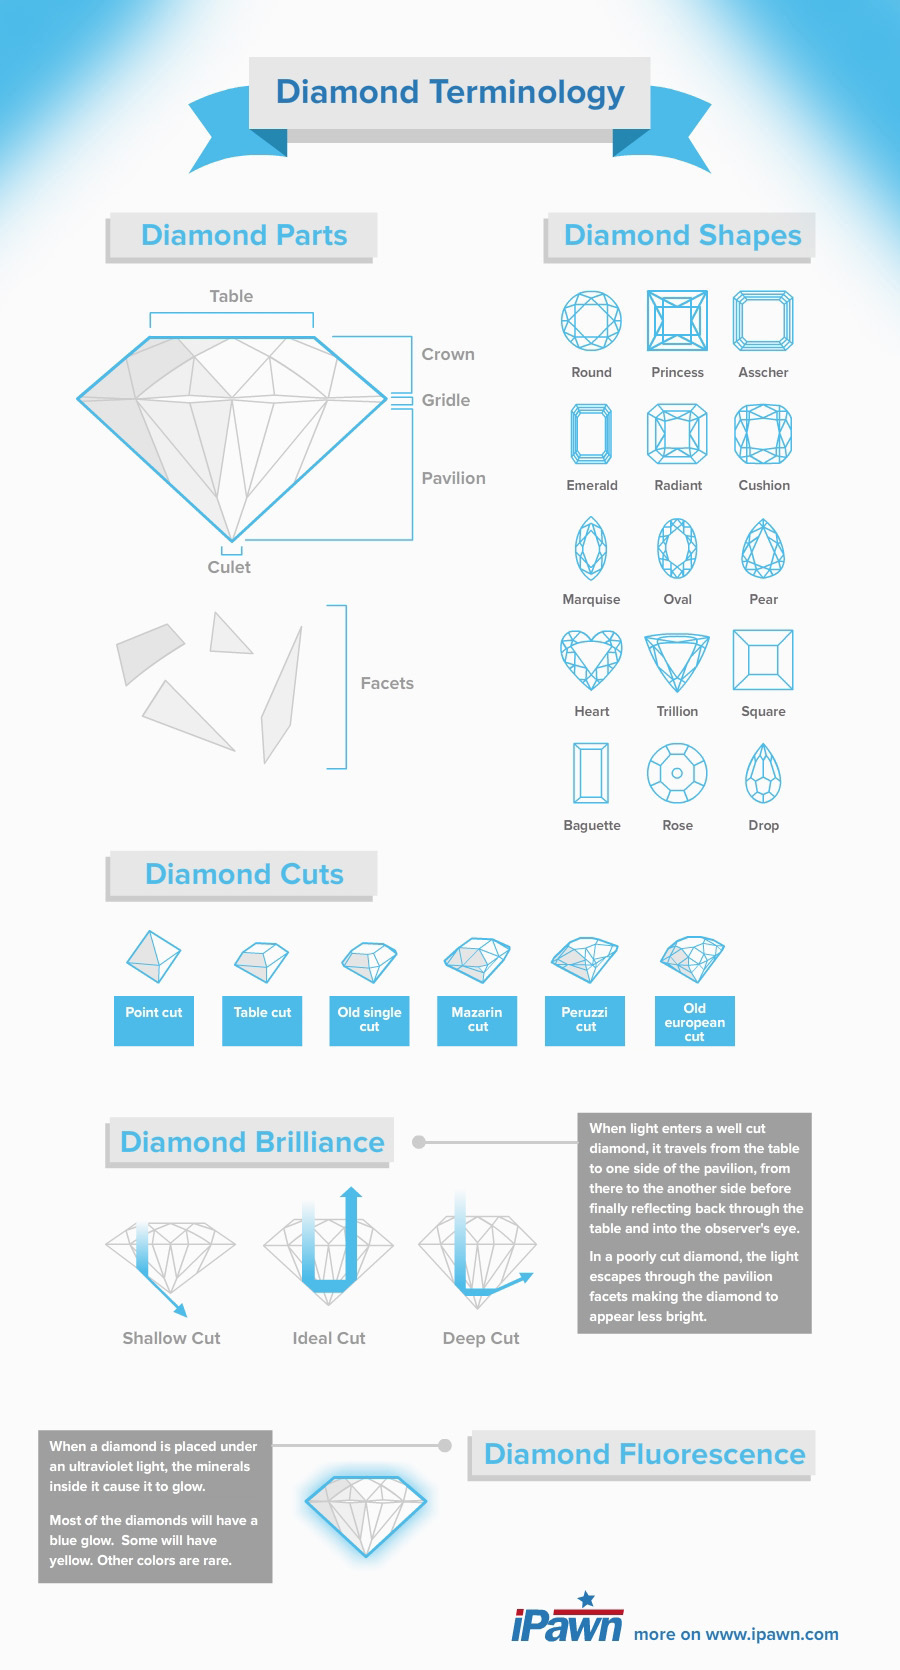 Diamonds Grading Infographic